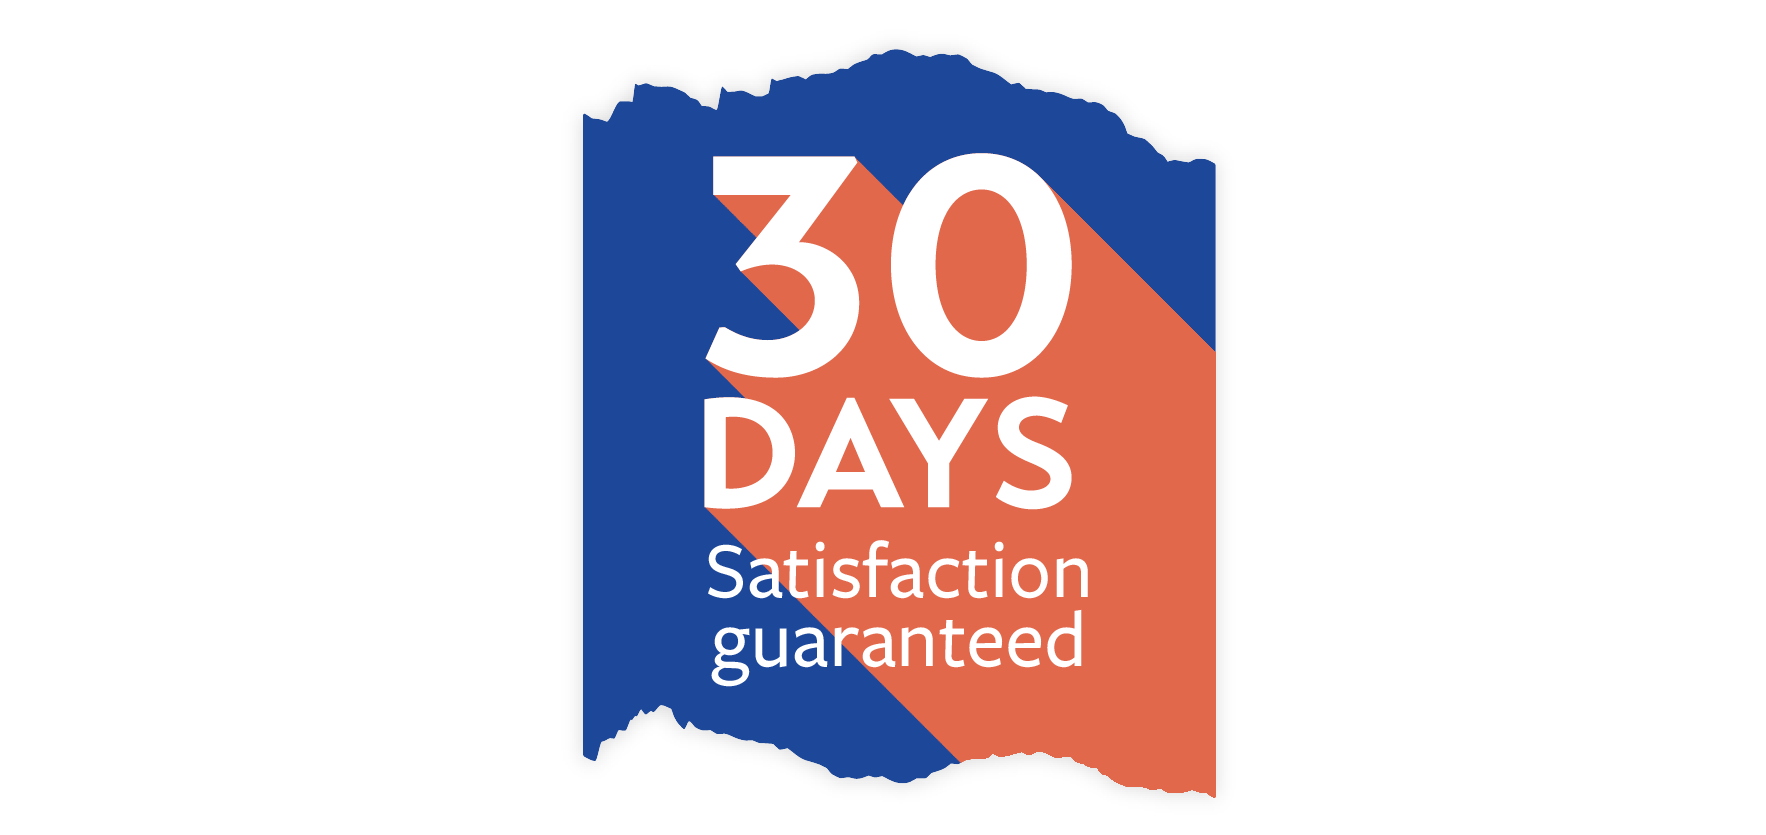 30 days satisfaction guaranteed